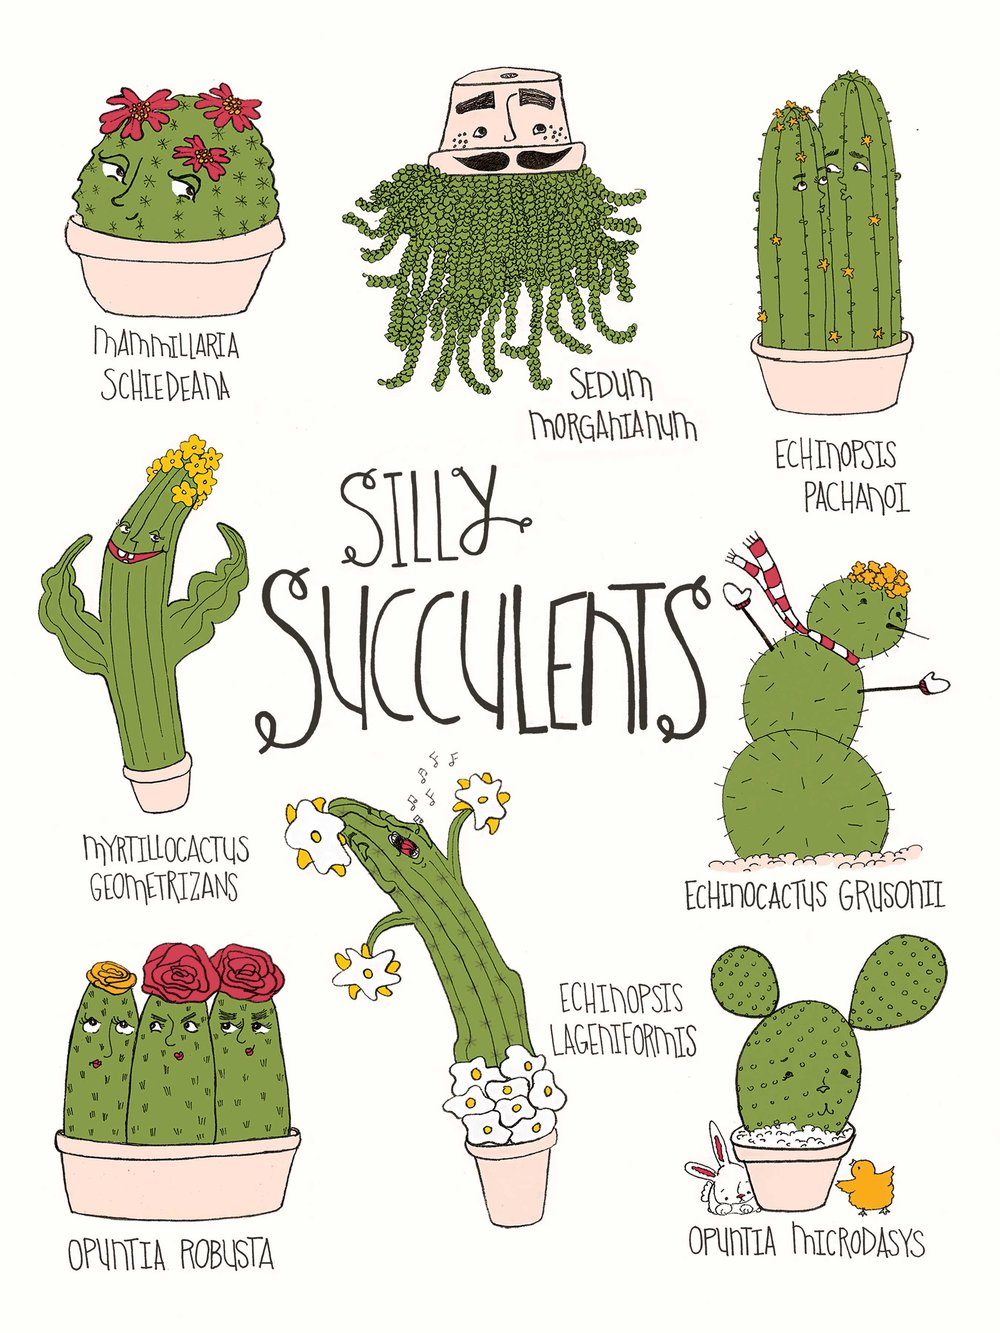 Silly Succulents 9x12.jpg